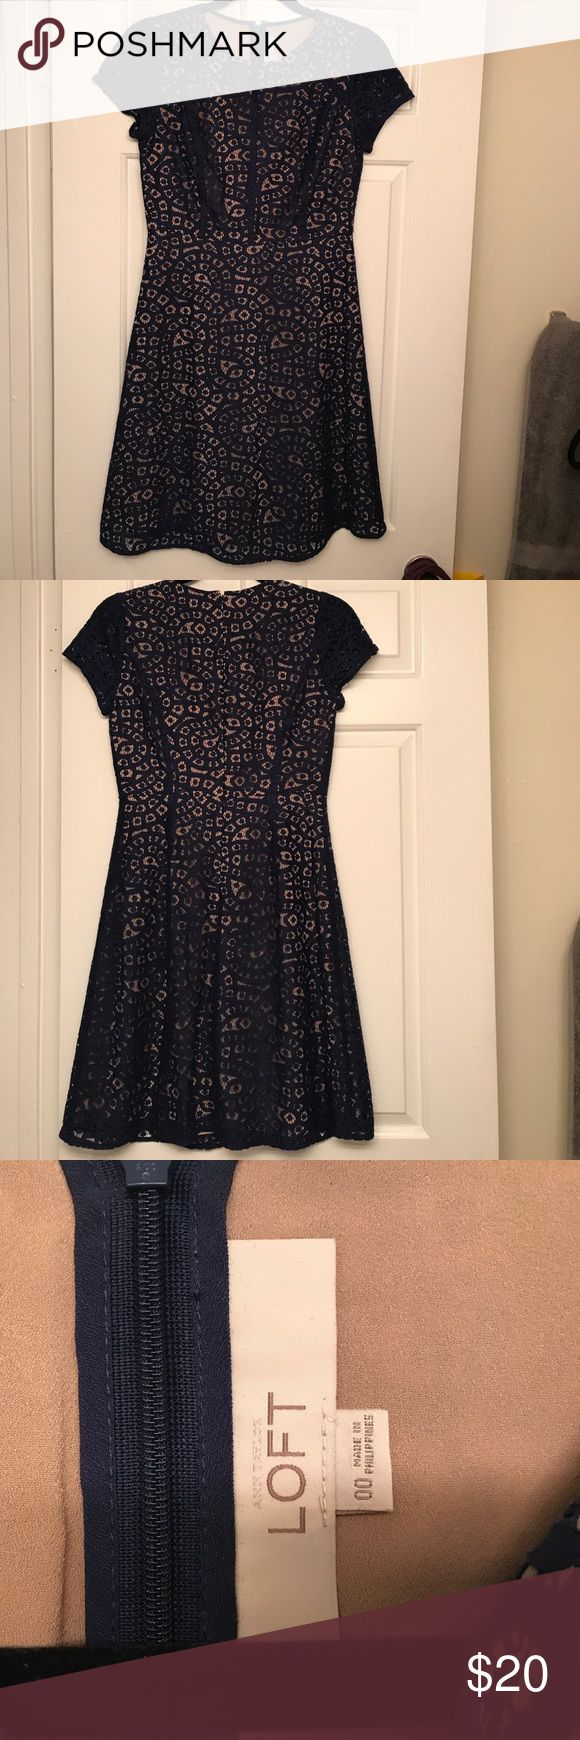 Ann Taylor Loft navy lace detailed dress This is the perfect wedding guest dress! It is a 00, knee length dress with a tan skirt underneath and blue lace details on top. Ann Taylor Dresses Mini